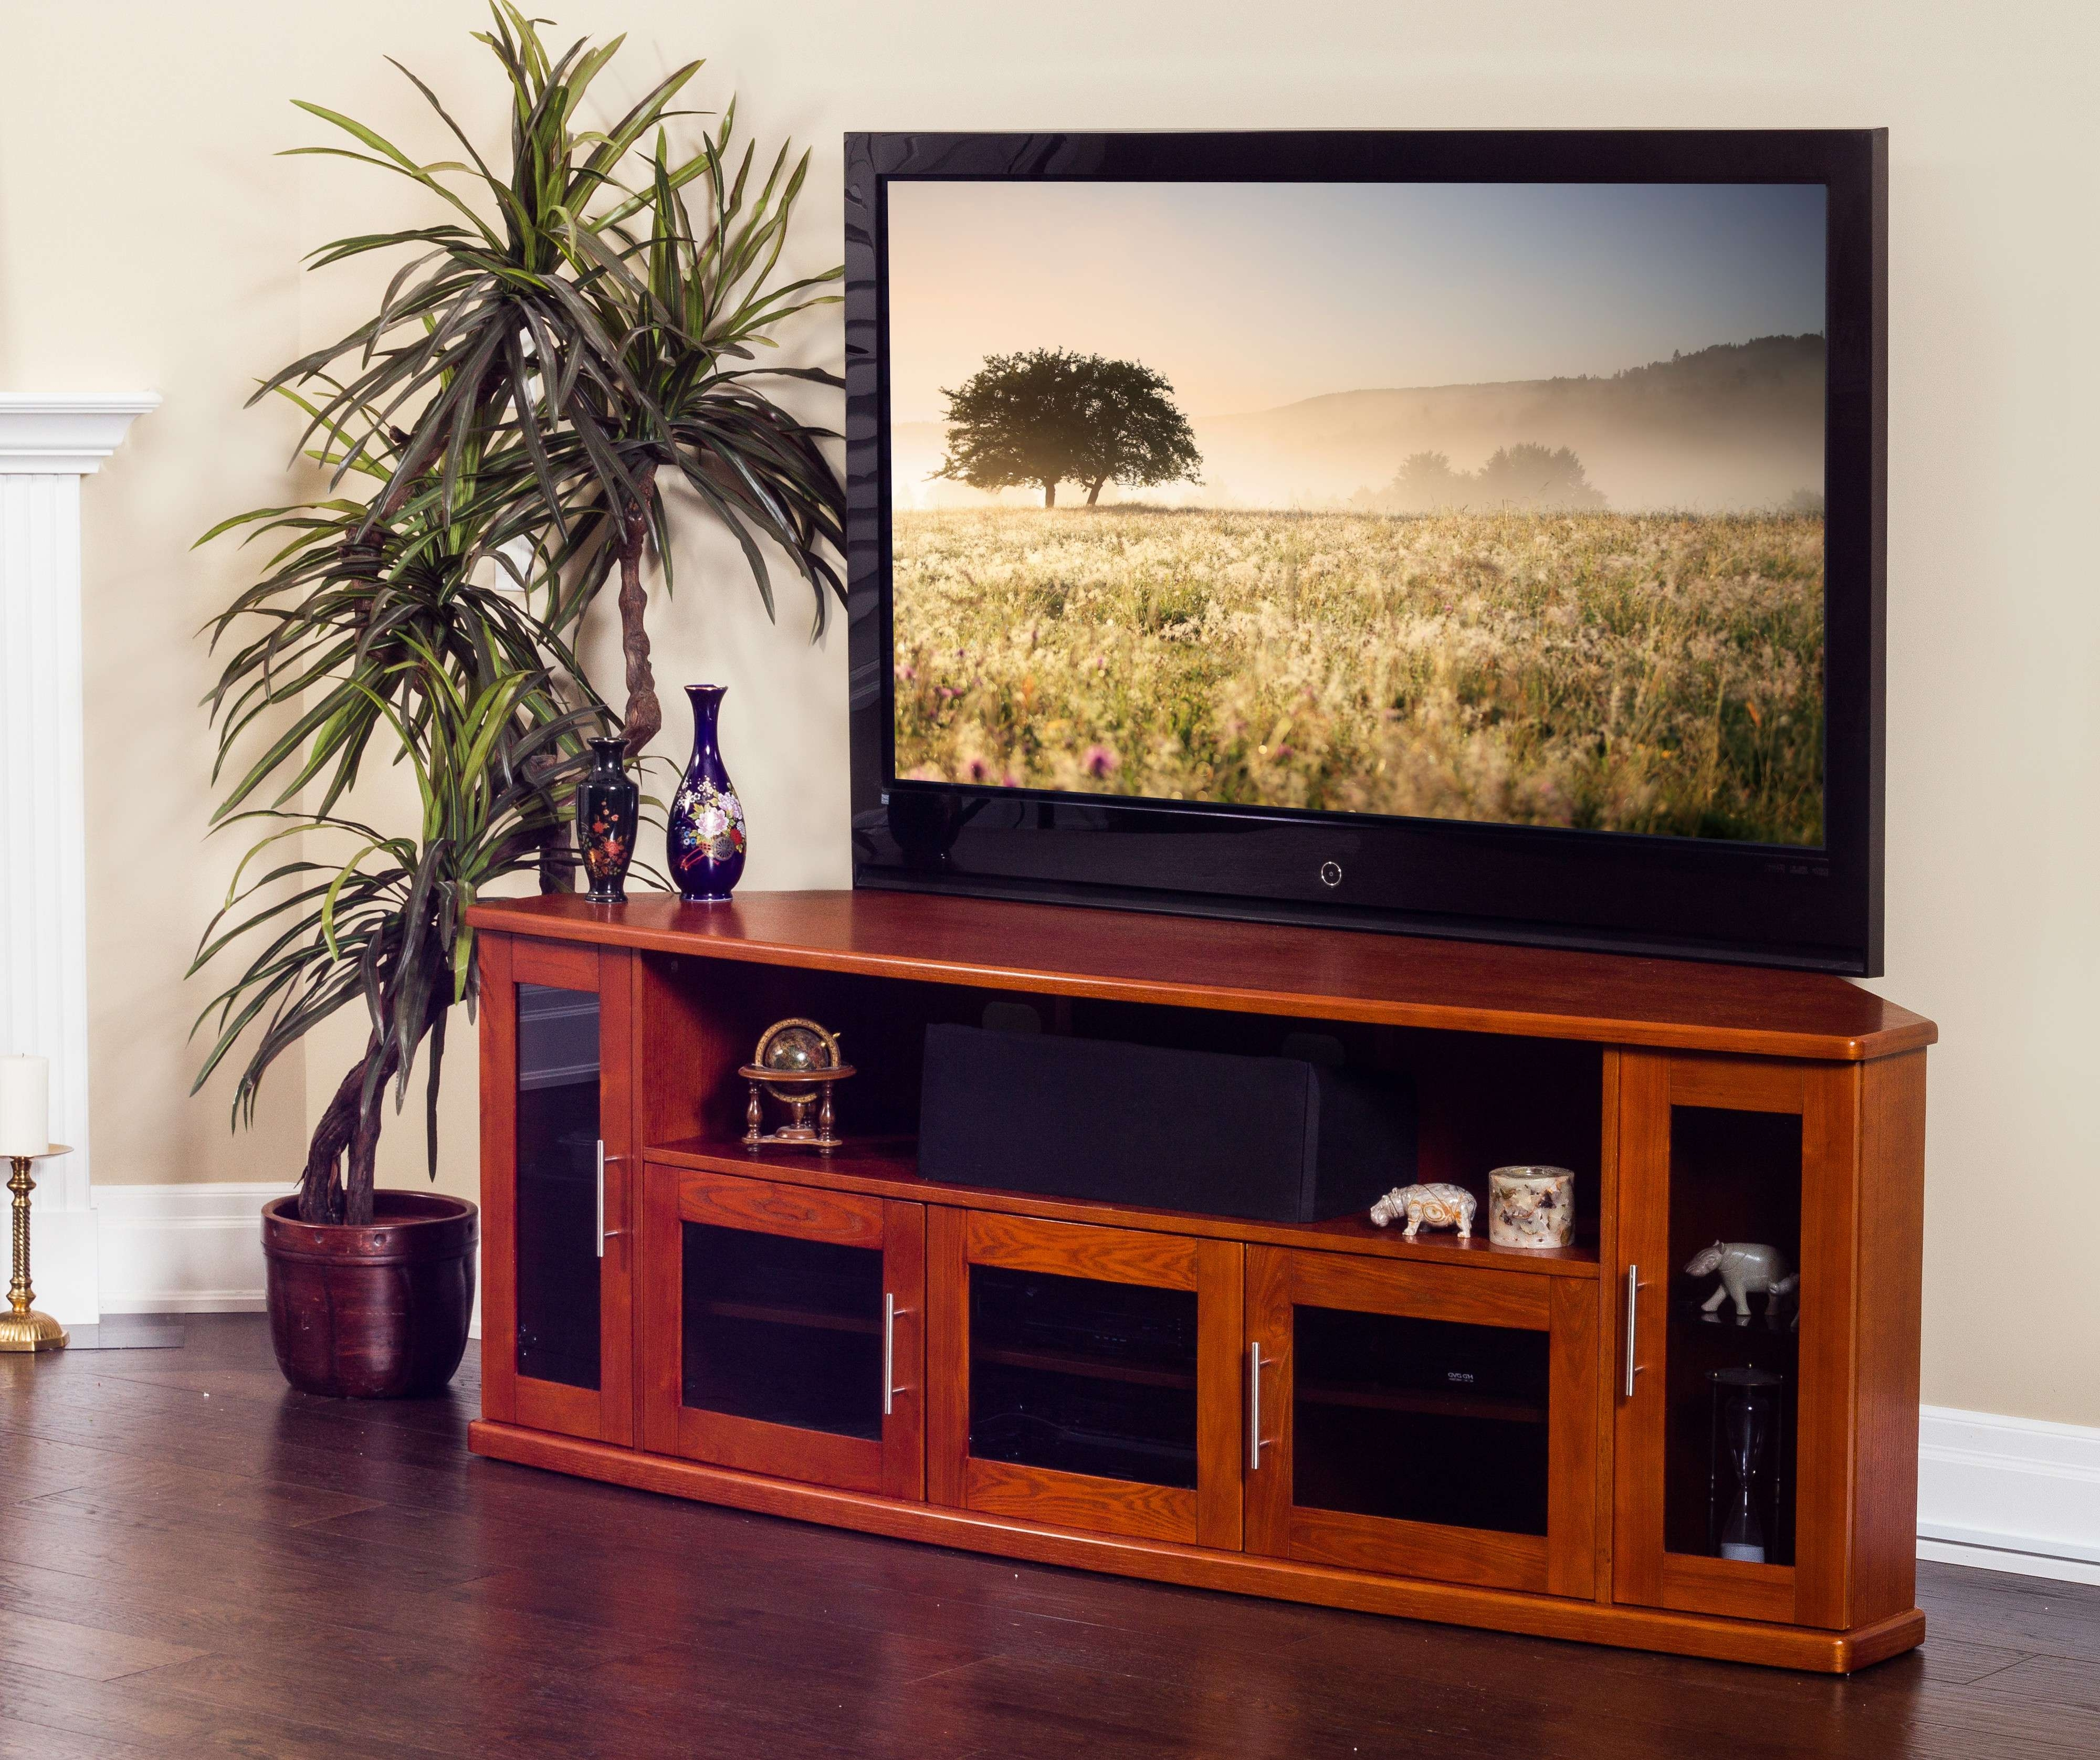 Buy Newport 80 Tv Stand Online – Plateaucorp With Regard To 80 Inch Tv Stands (View 12 of 15)